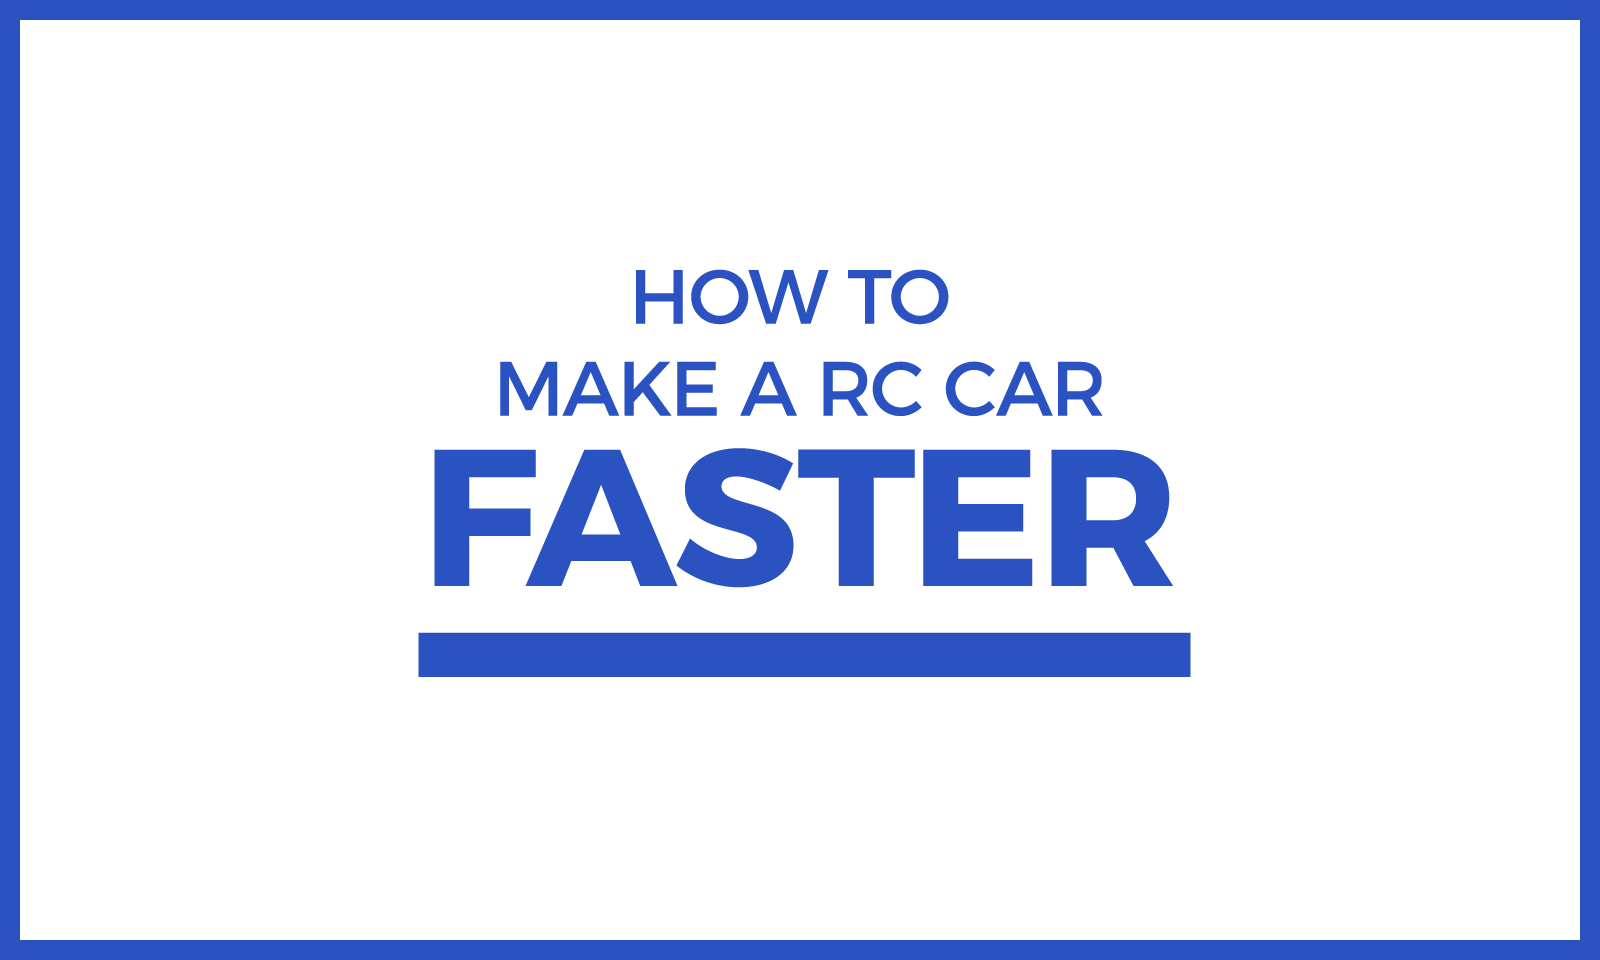 How to Make a RC Car Faster